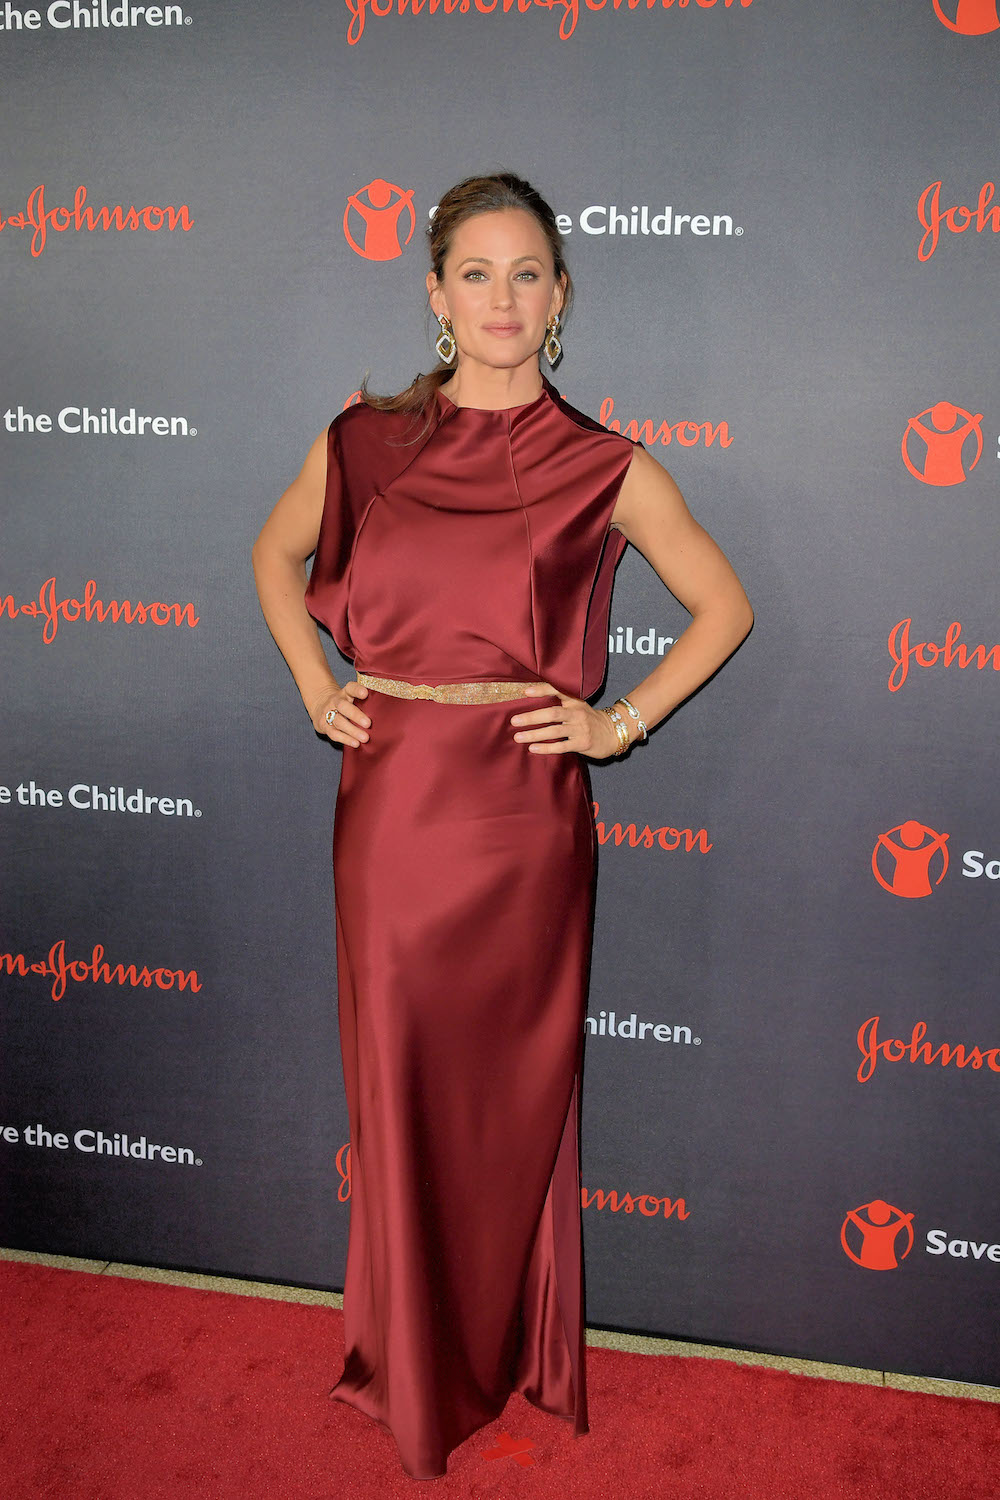 Jennifer Garner in Maroon Dress at Save the Children Illumination Gala in New York City: Get the Look